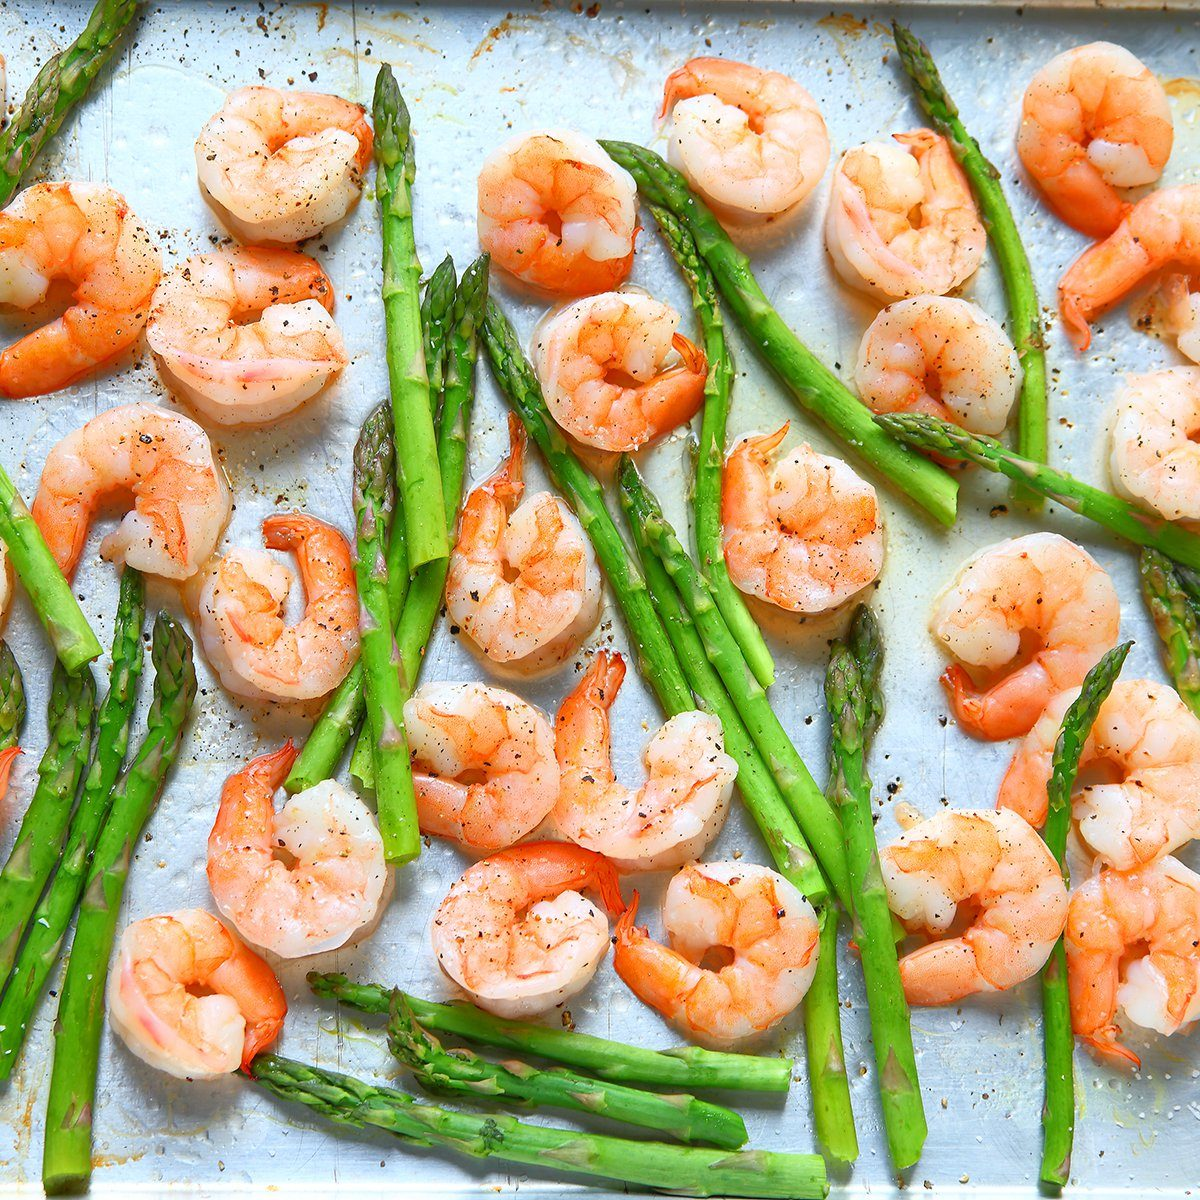 Sheet pan dinner of shrimp and asparagus with olive oil and black pepper